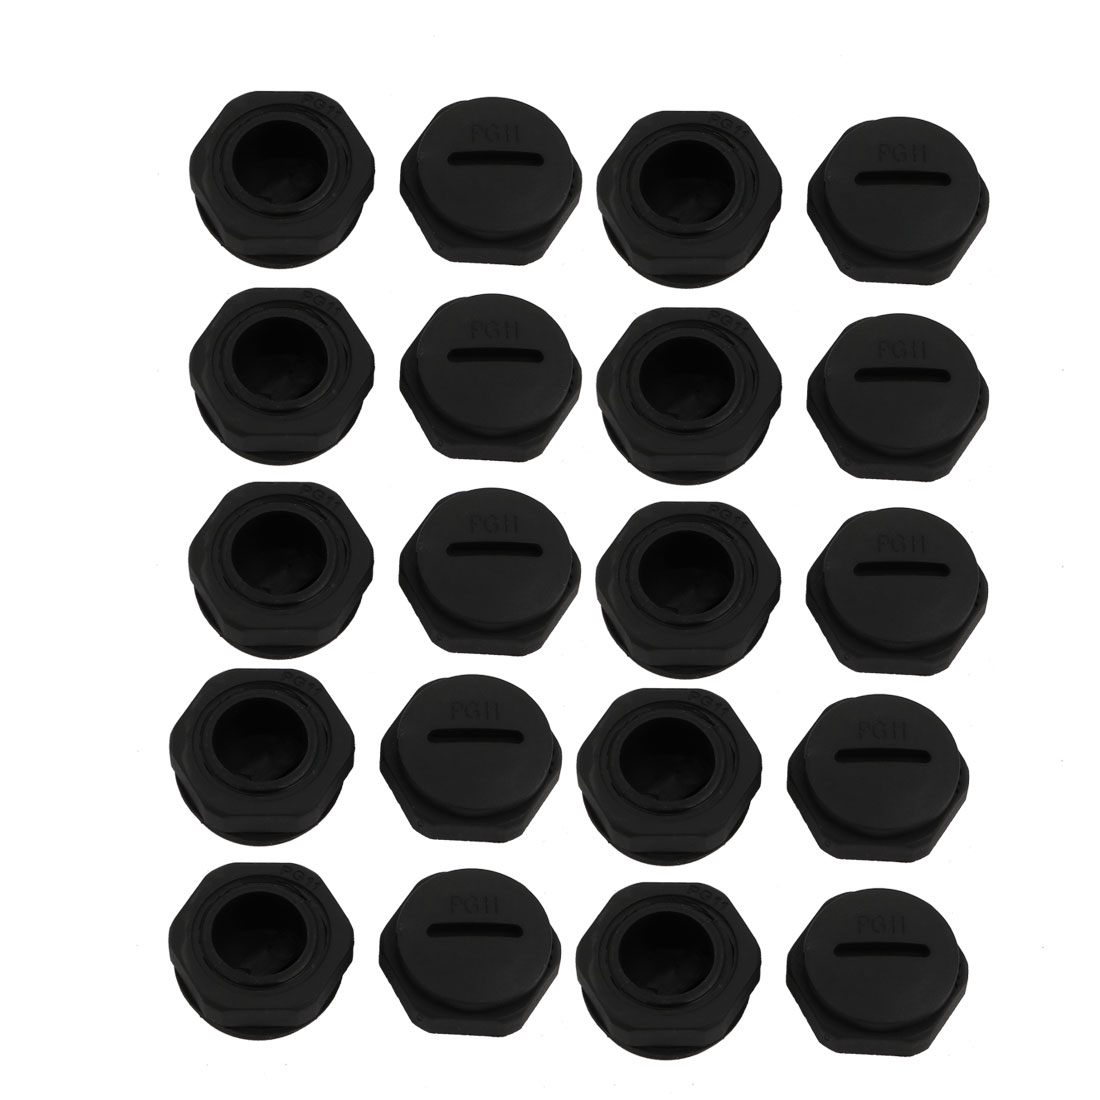 20pcs GLW-PG11B Nylon Thread Cable Gland Cap Round Screw-in Cover Black w Washer